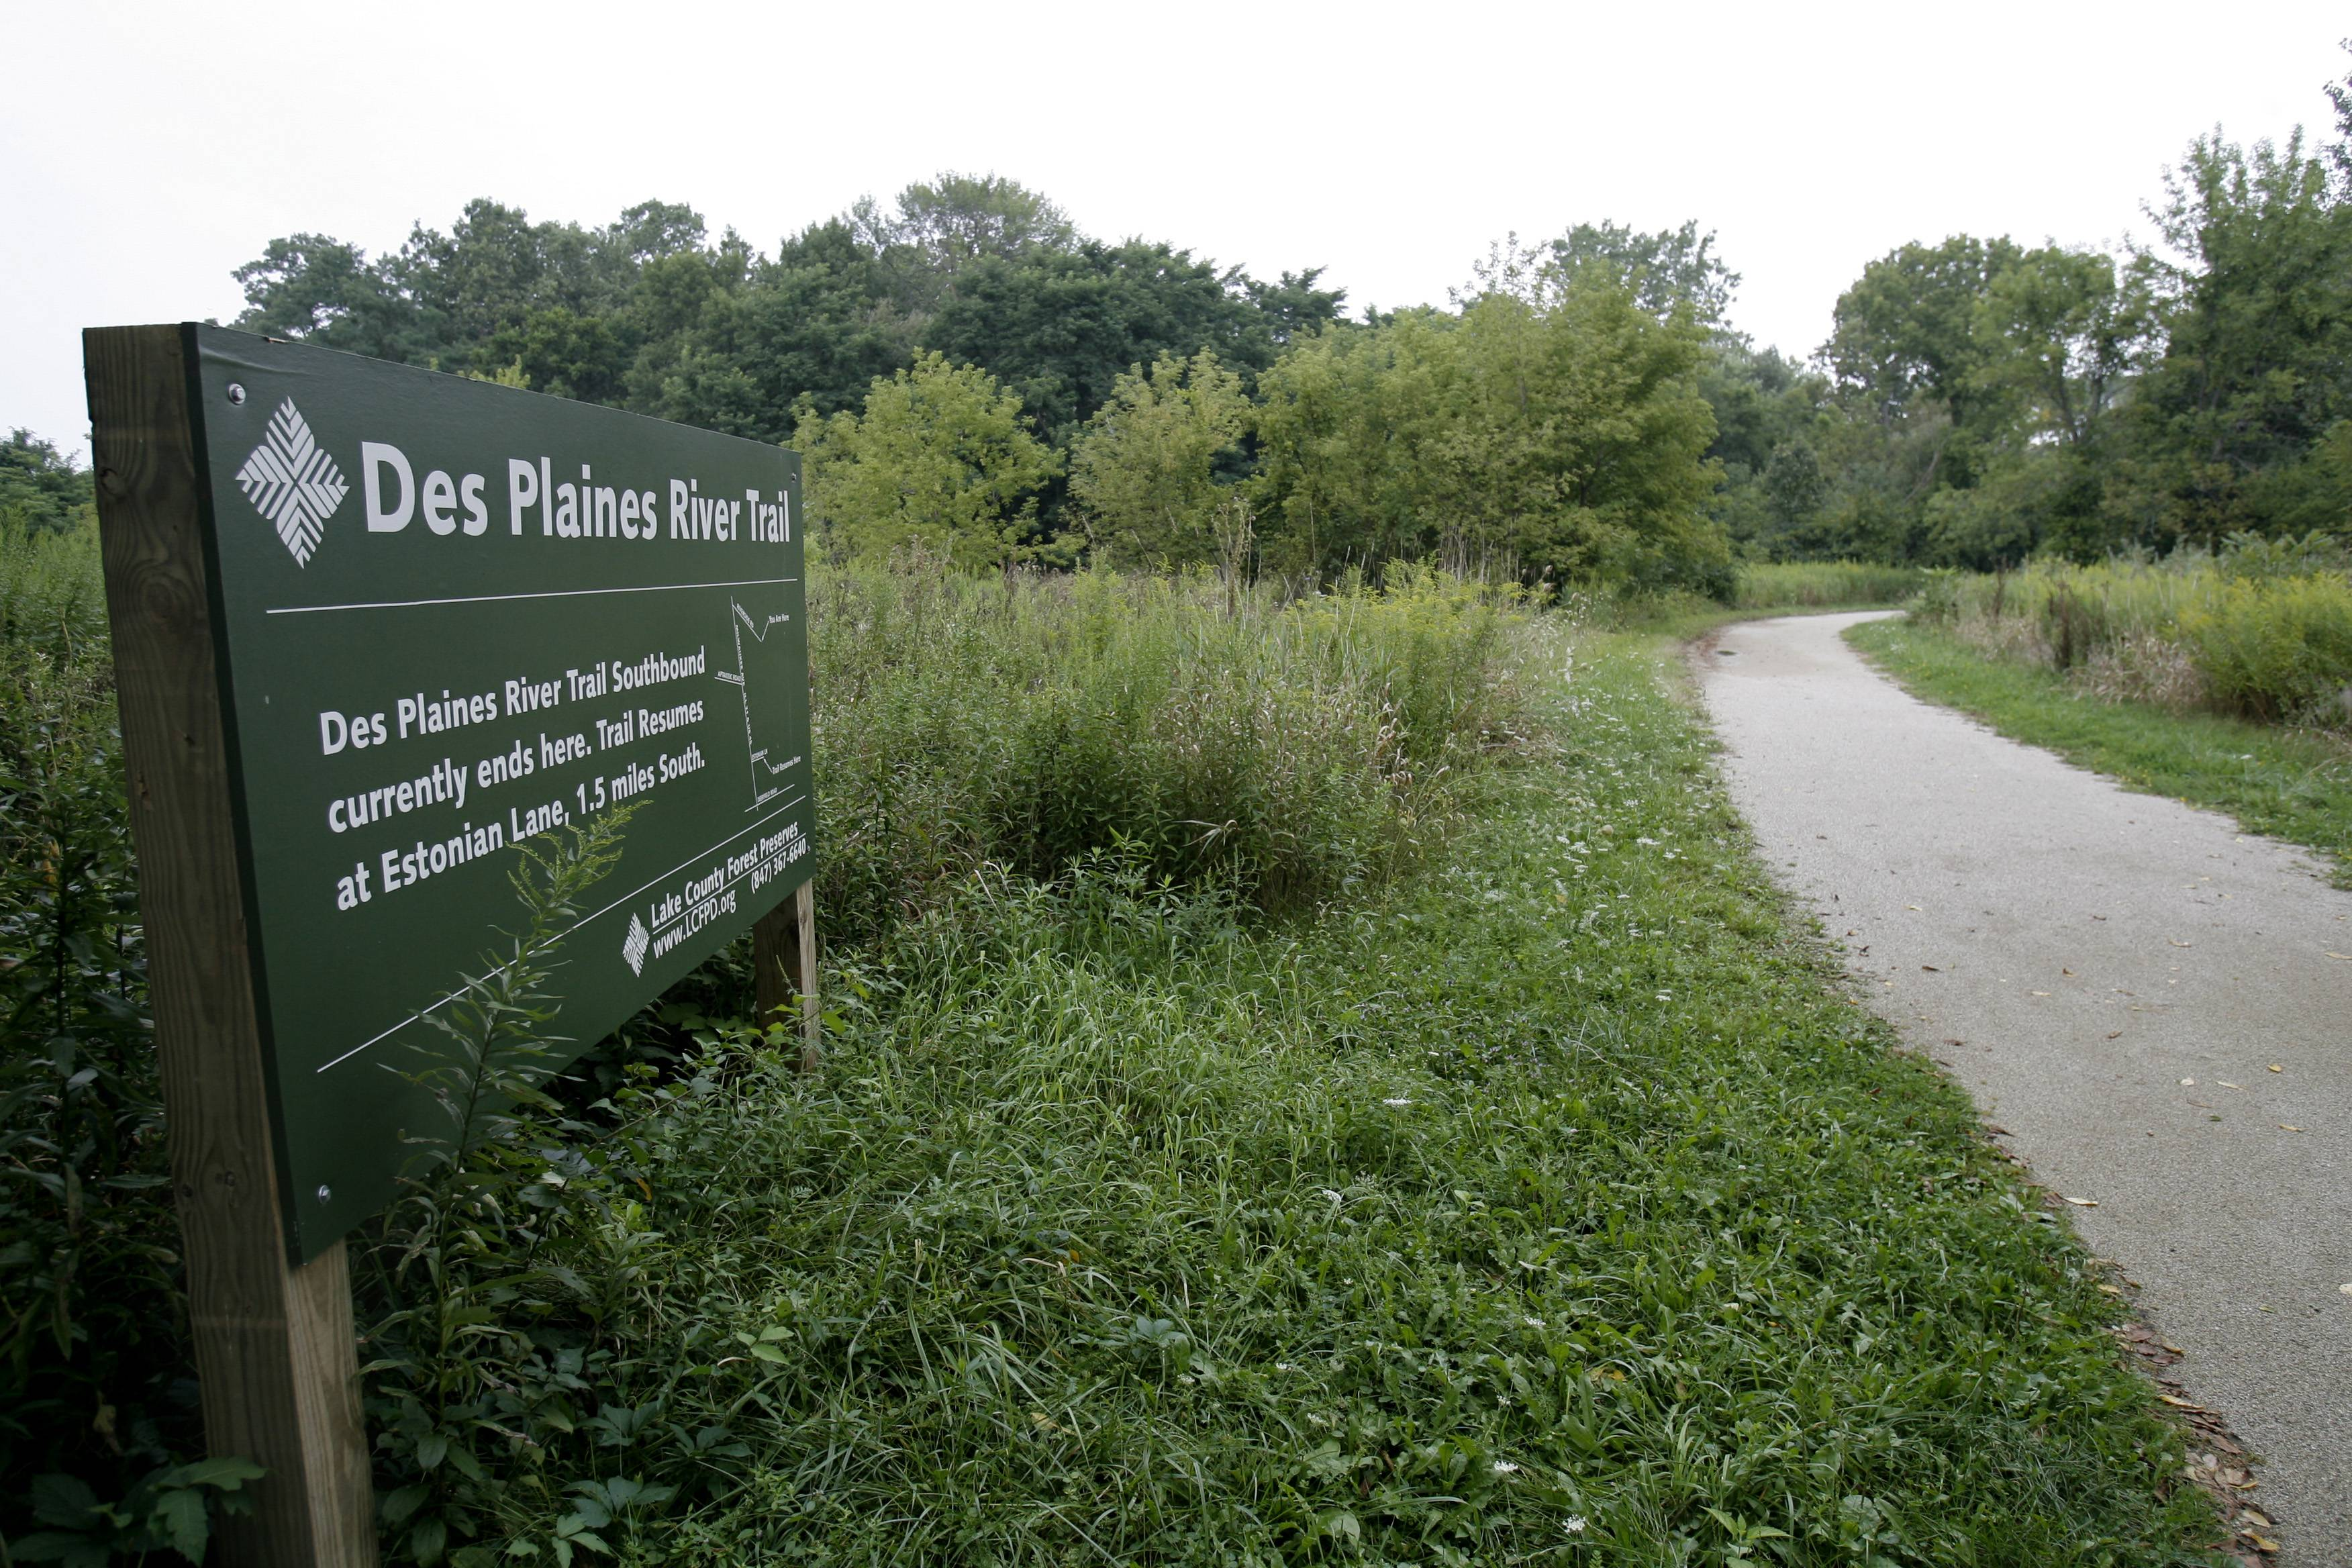 Editorial: Patience, good will help close river trail deal